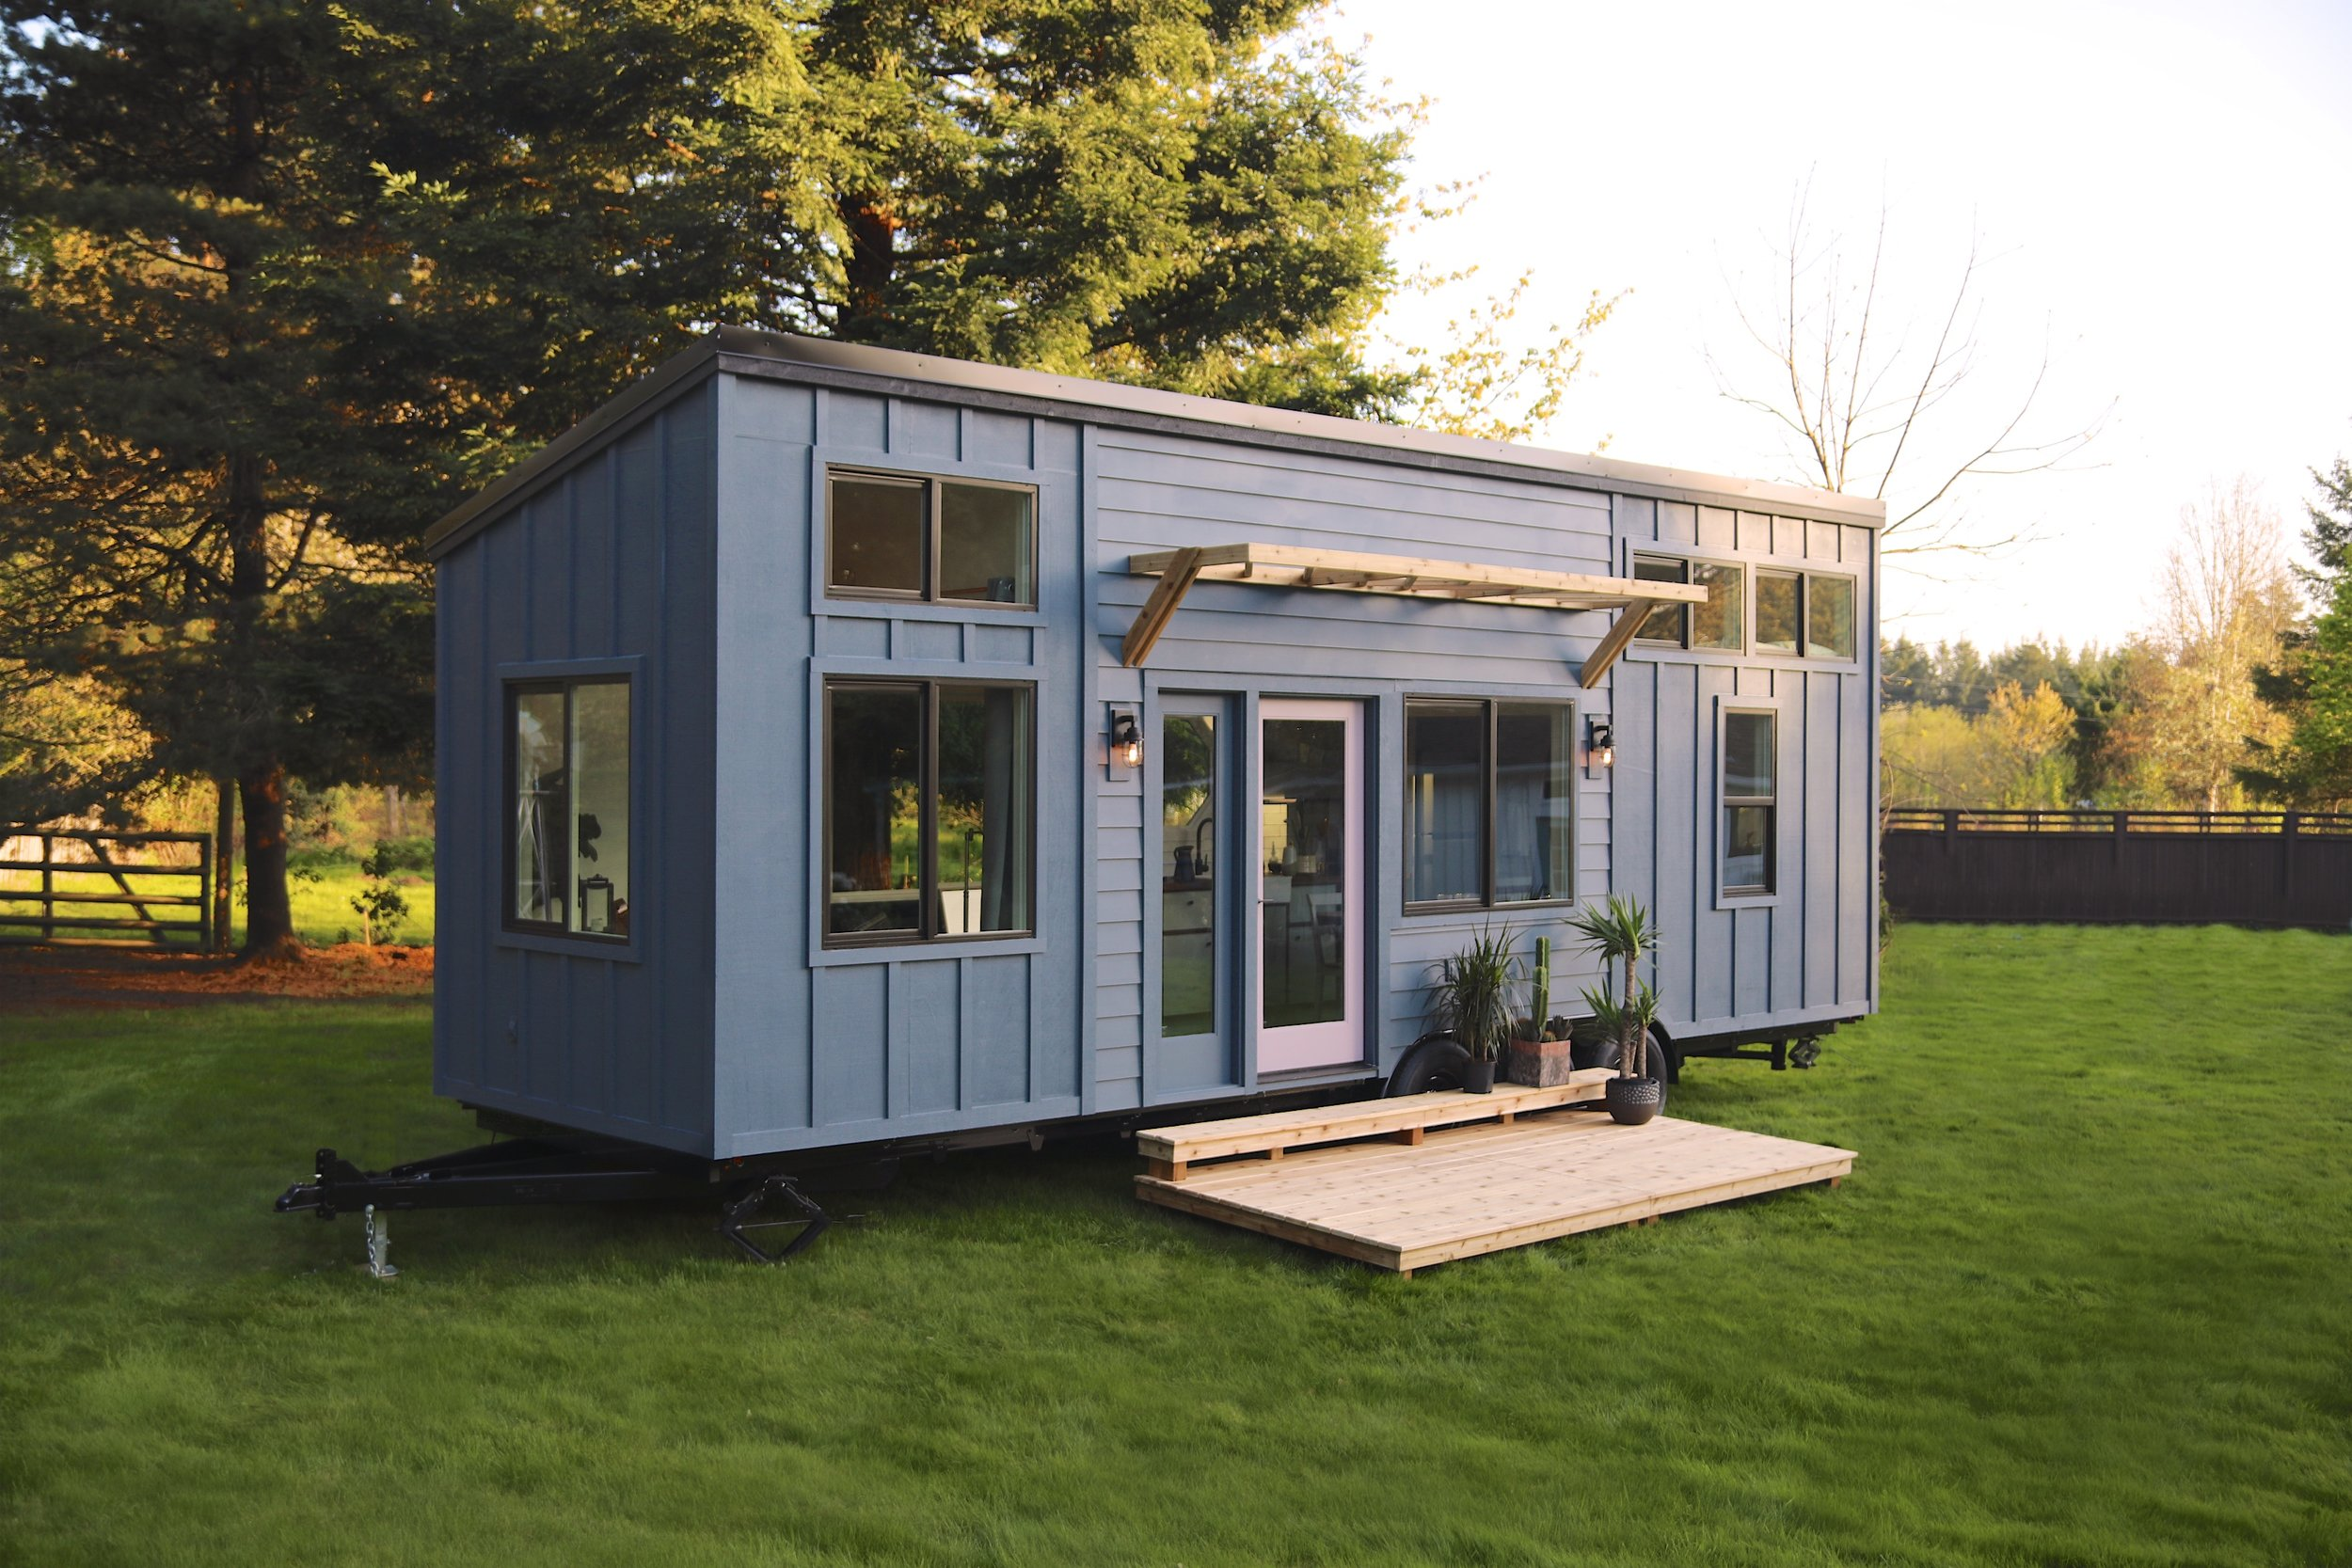 Pacific Harbor Tiny Home by Handcrafted Movement